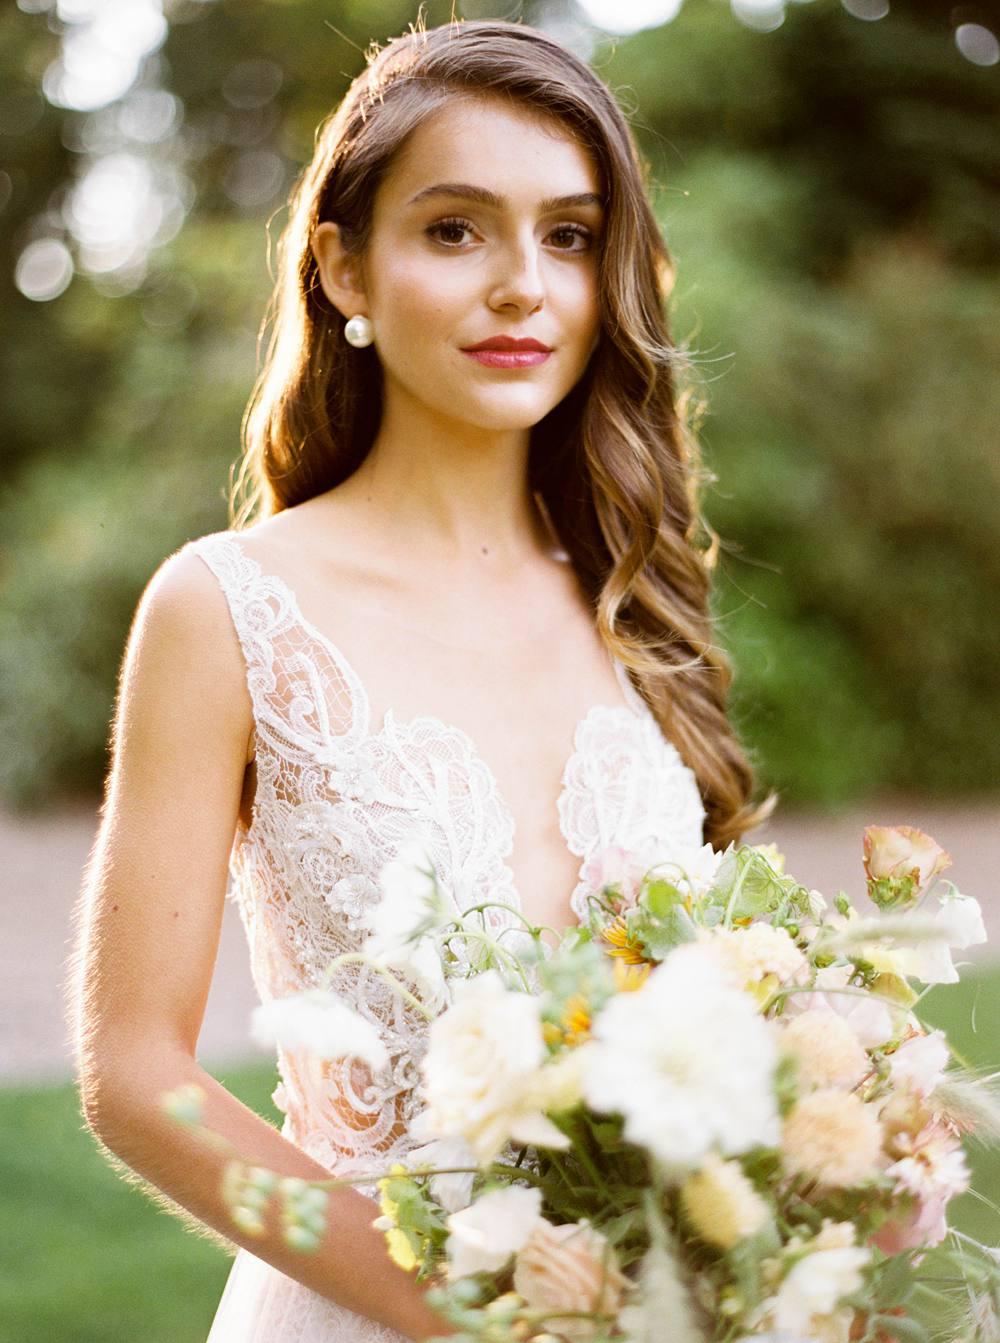 A stunning bride glows in the golden summer light while holding a pink and white floral bouquet.